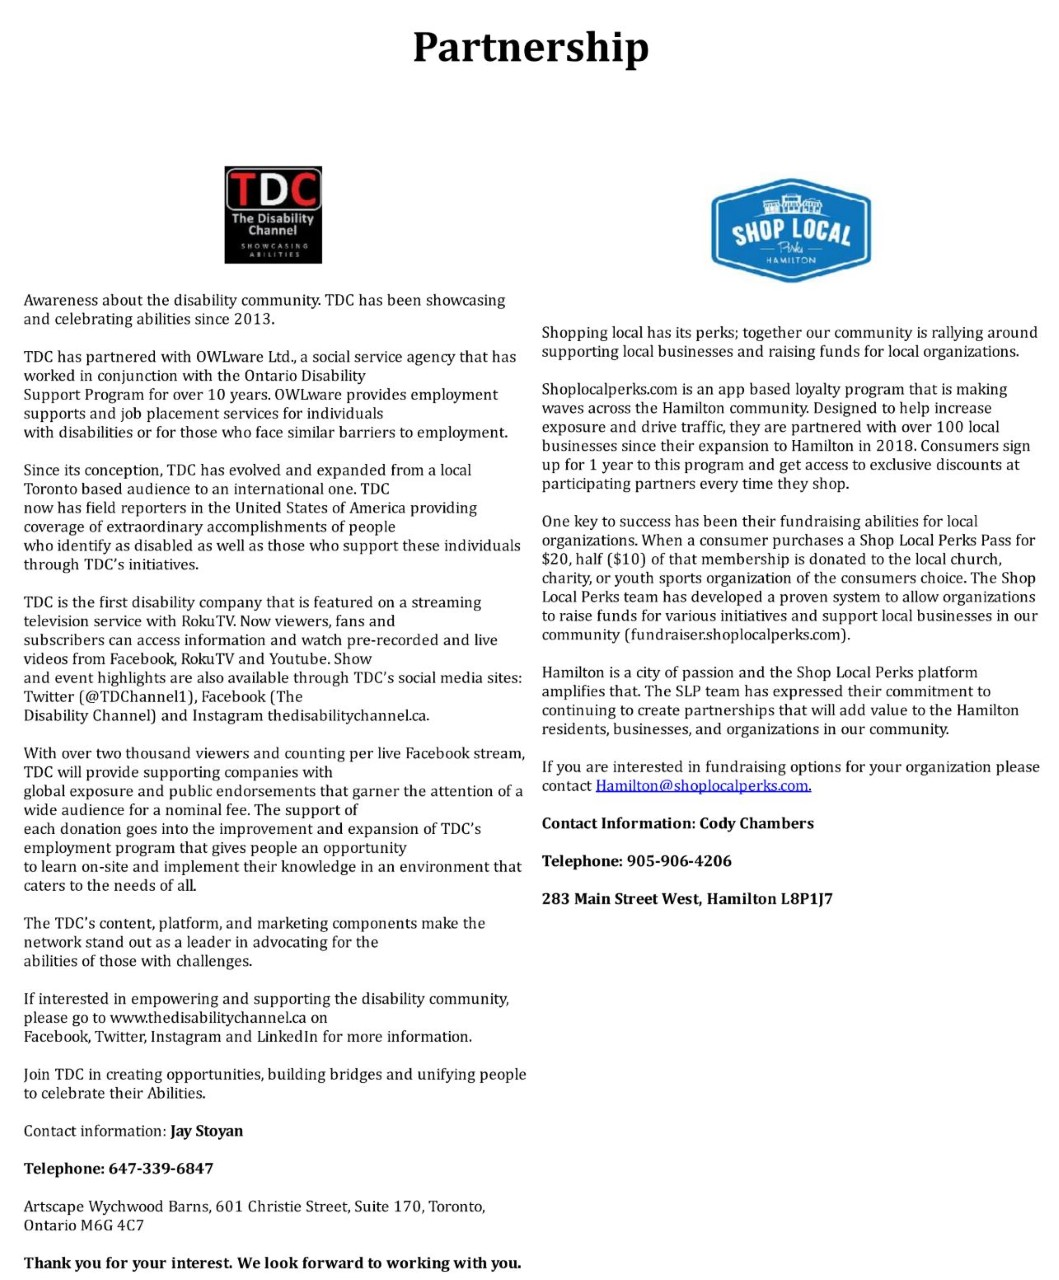 The Disability Channel and Shop Local Perks Partnership Letter